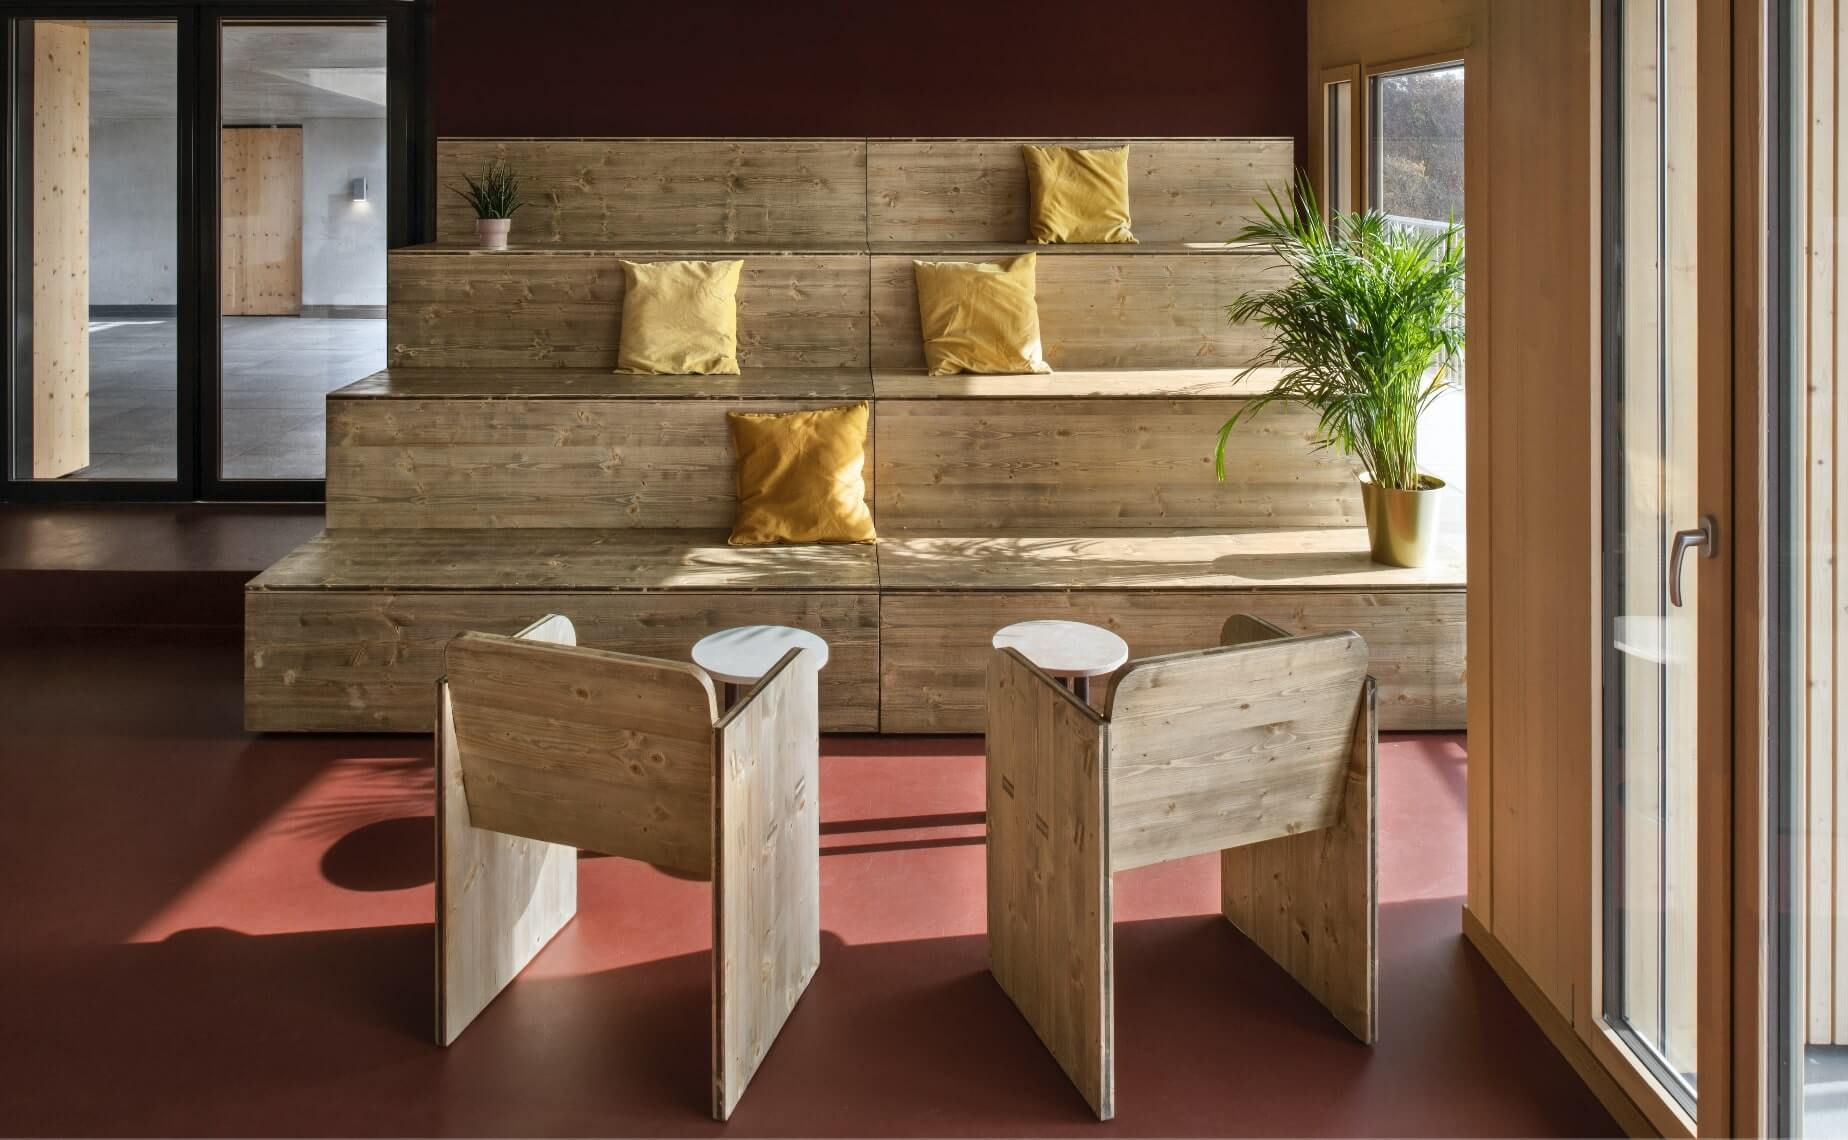 the modulable bleachers design bring a warm atmosphere